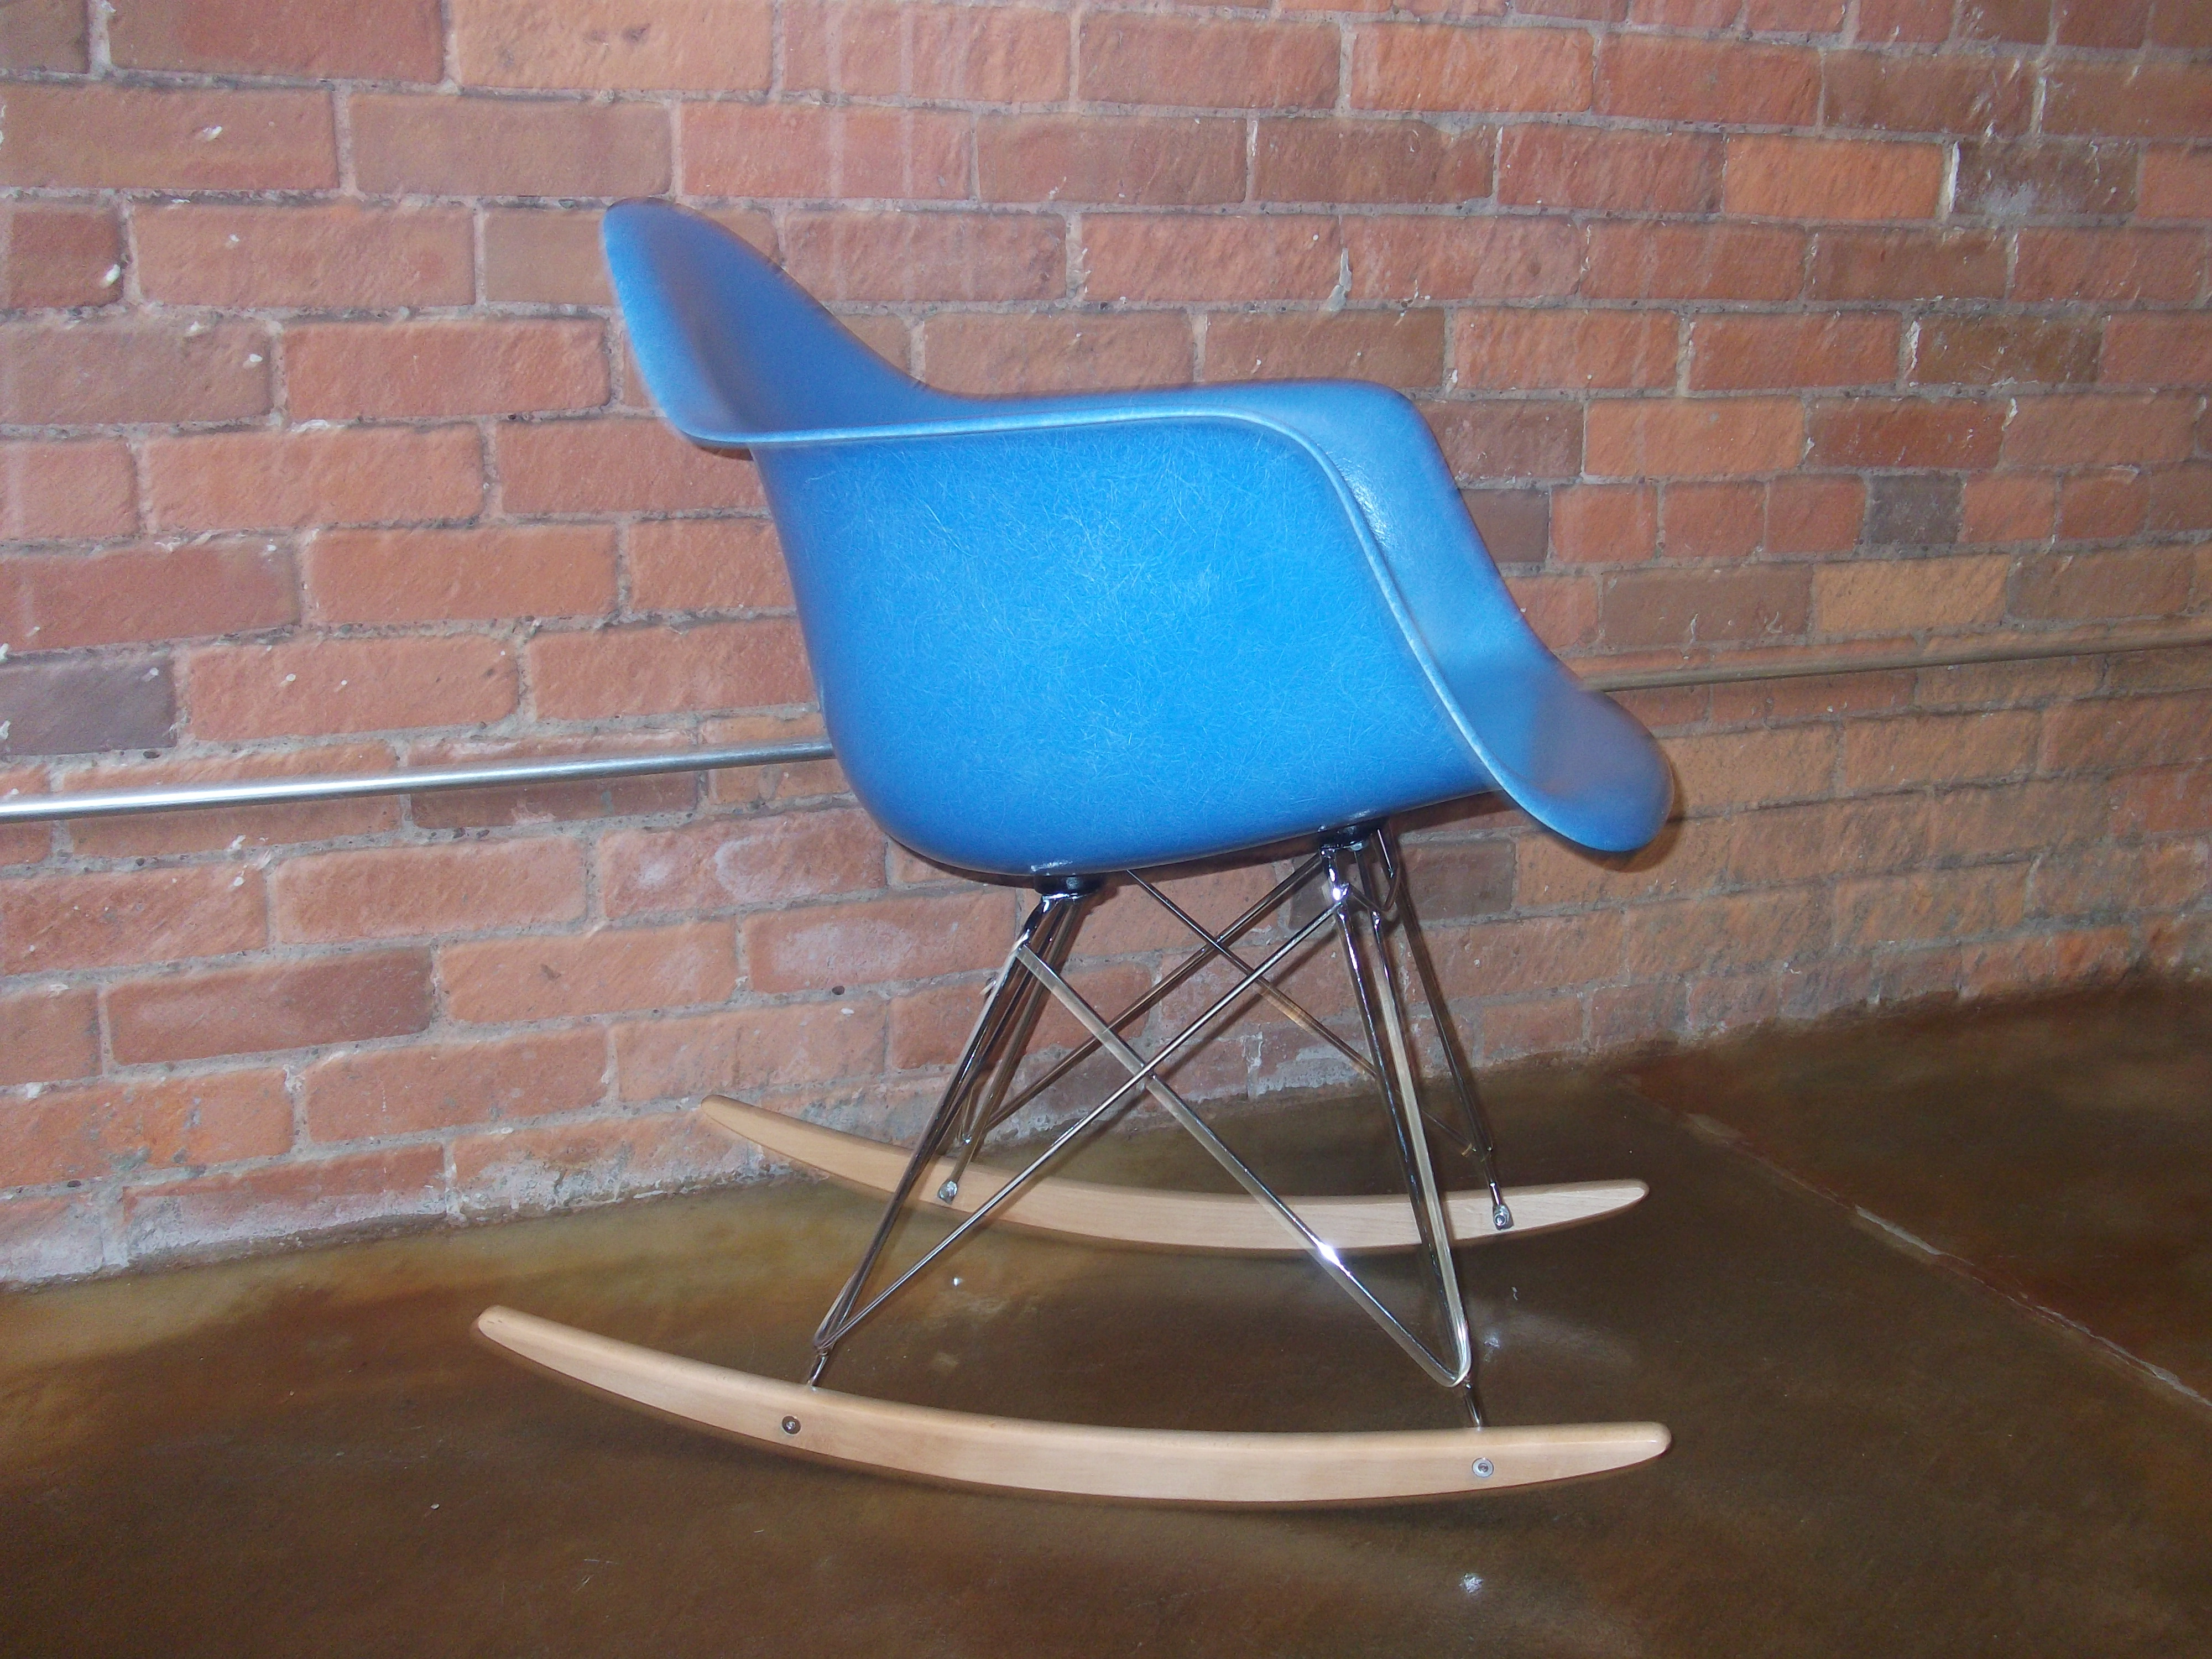 The fabulous find mid century modern furniture showroom in victoria b c victoria 39 s mid - Herman miller bucket chair ...